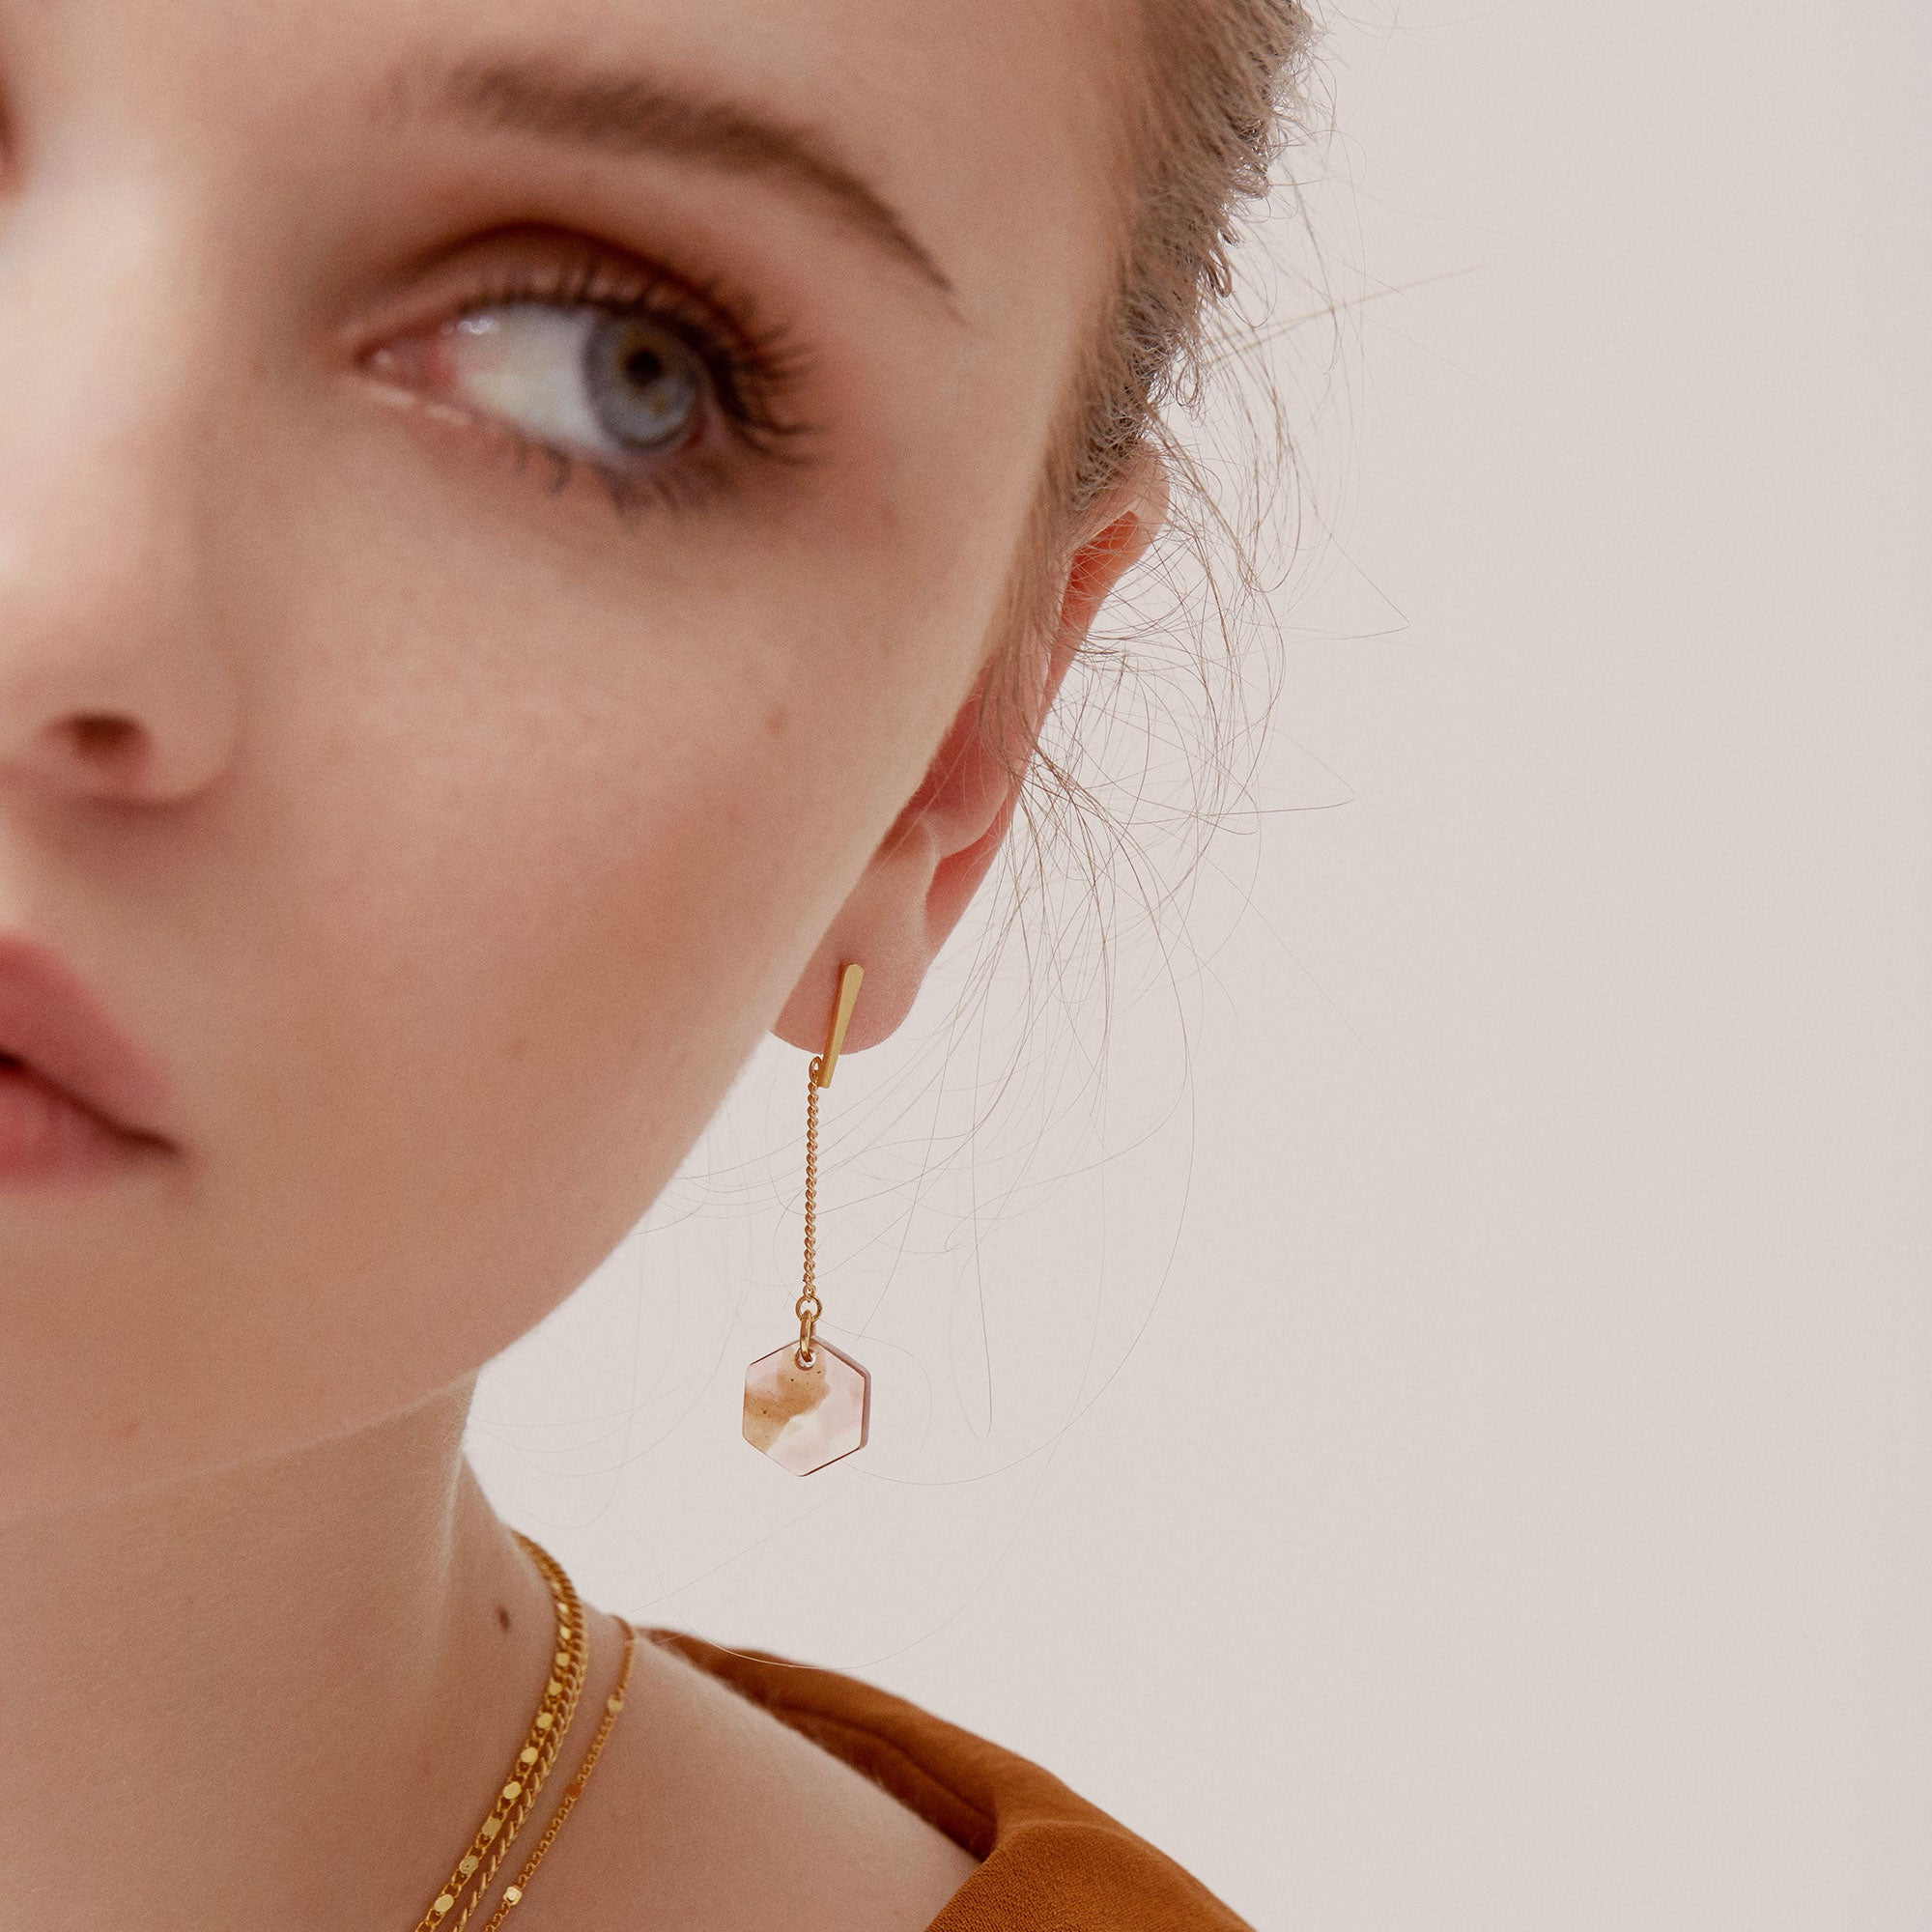 small acetate earrings sandrine devost